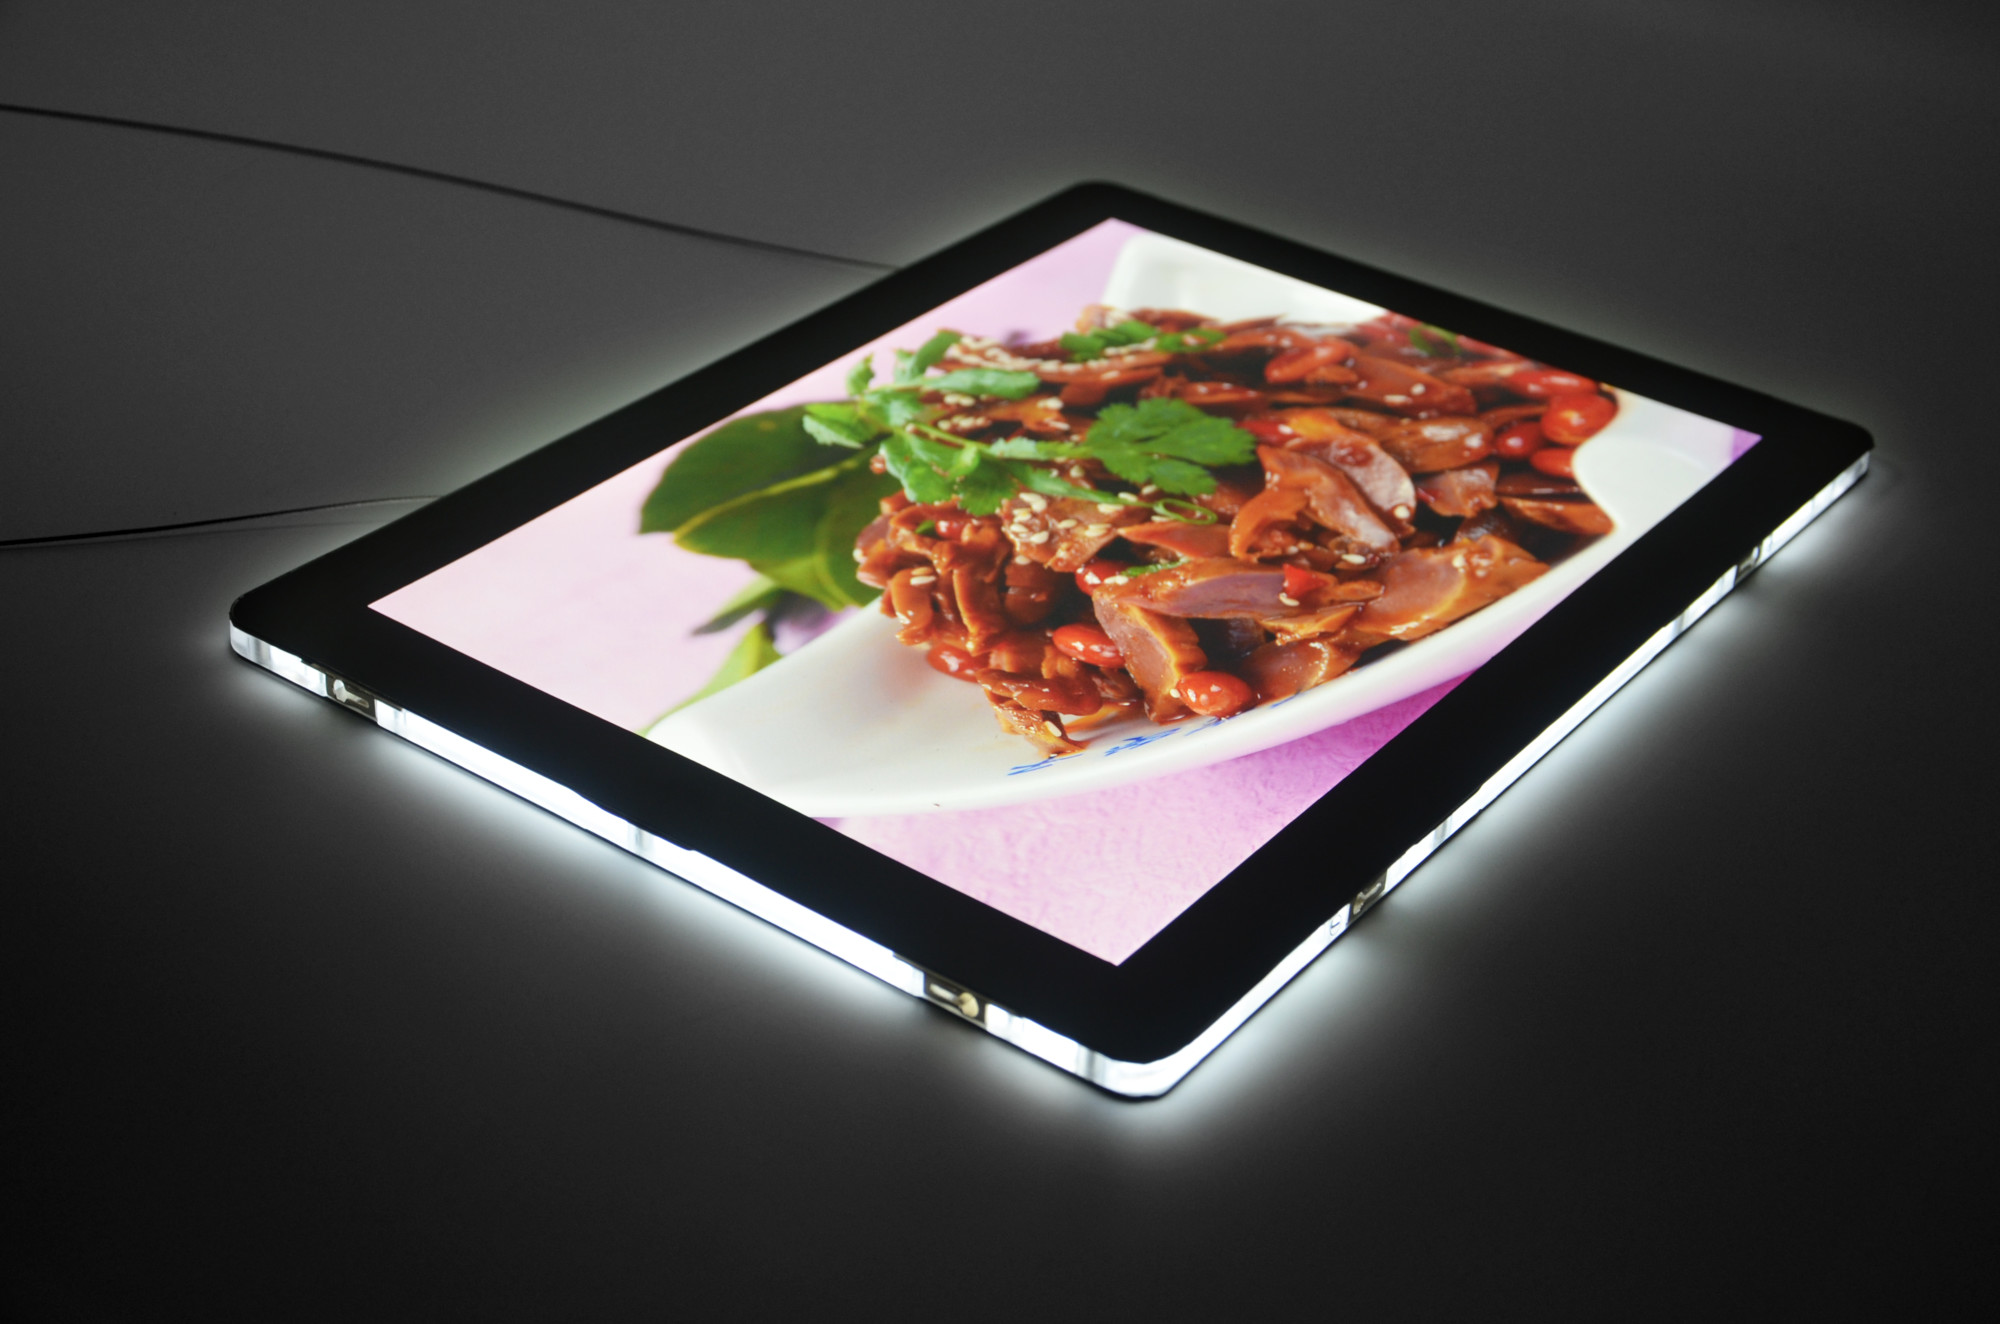 Poster LED Boards